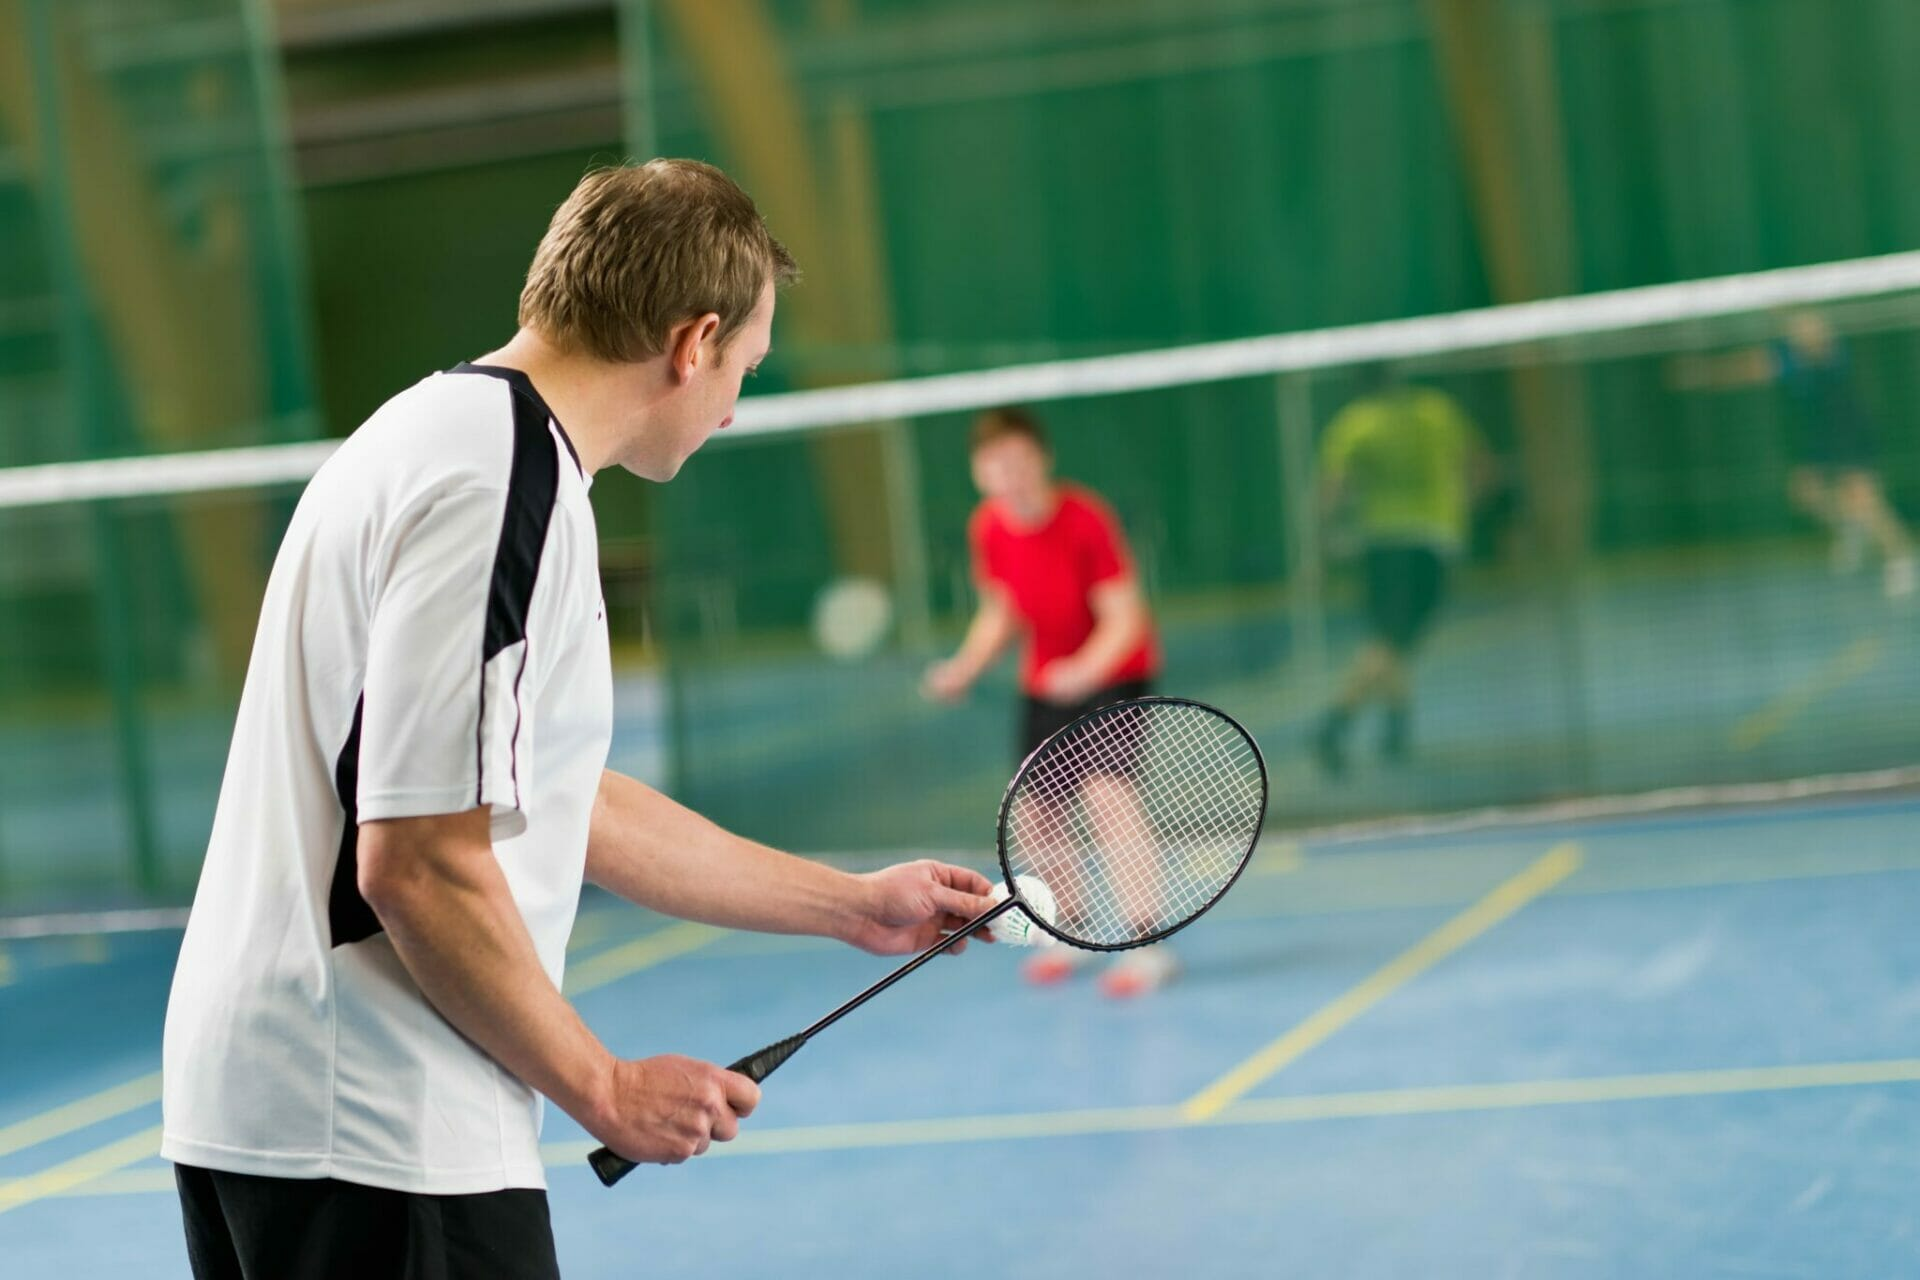 Wrist Sprain – Self Help Exercises for Badminton Players